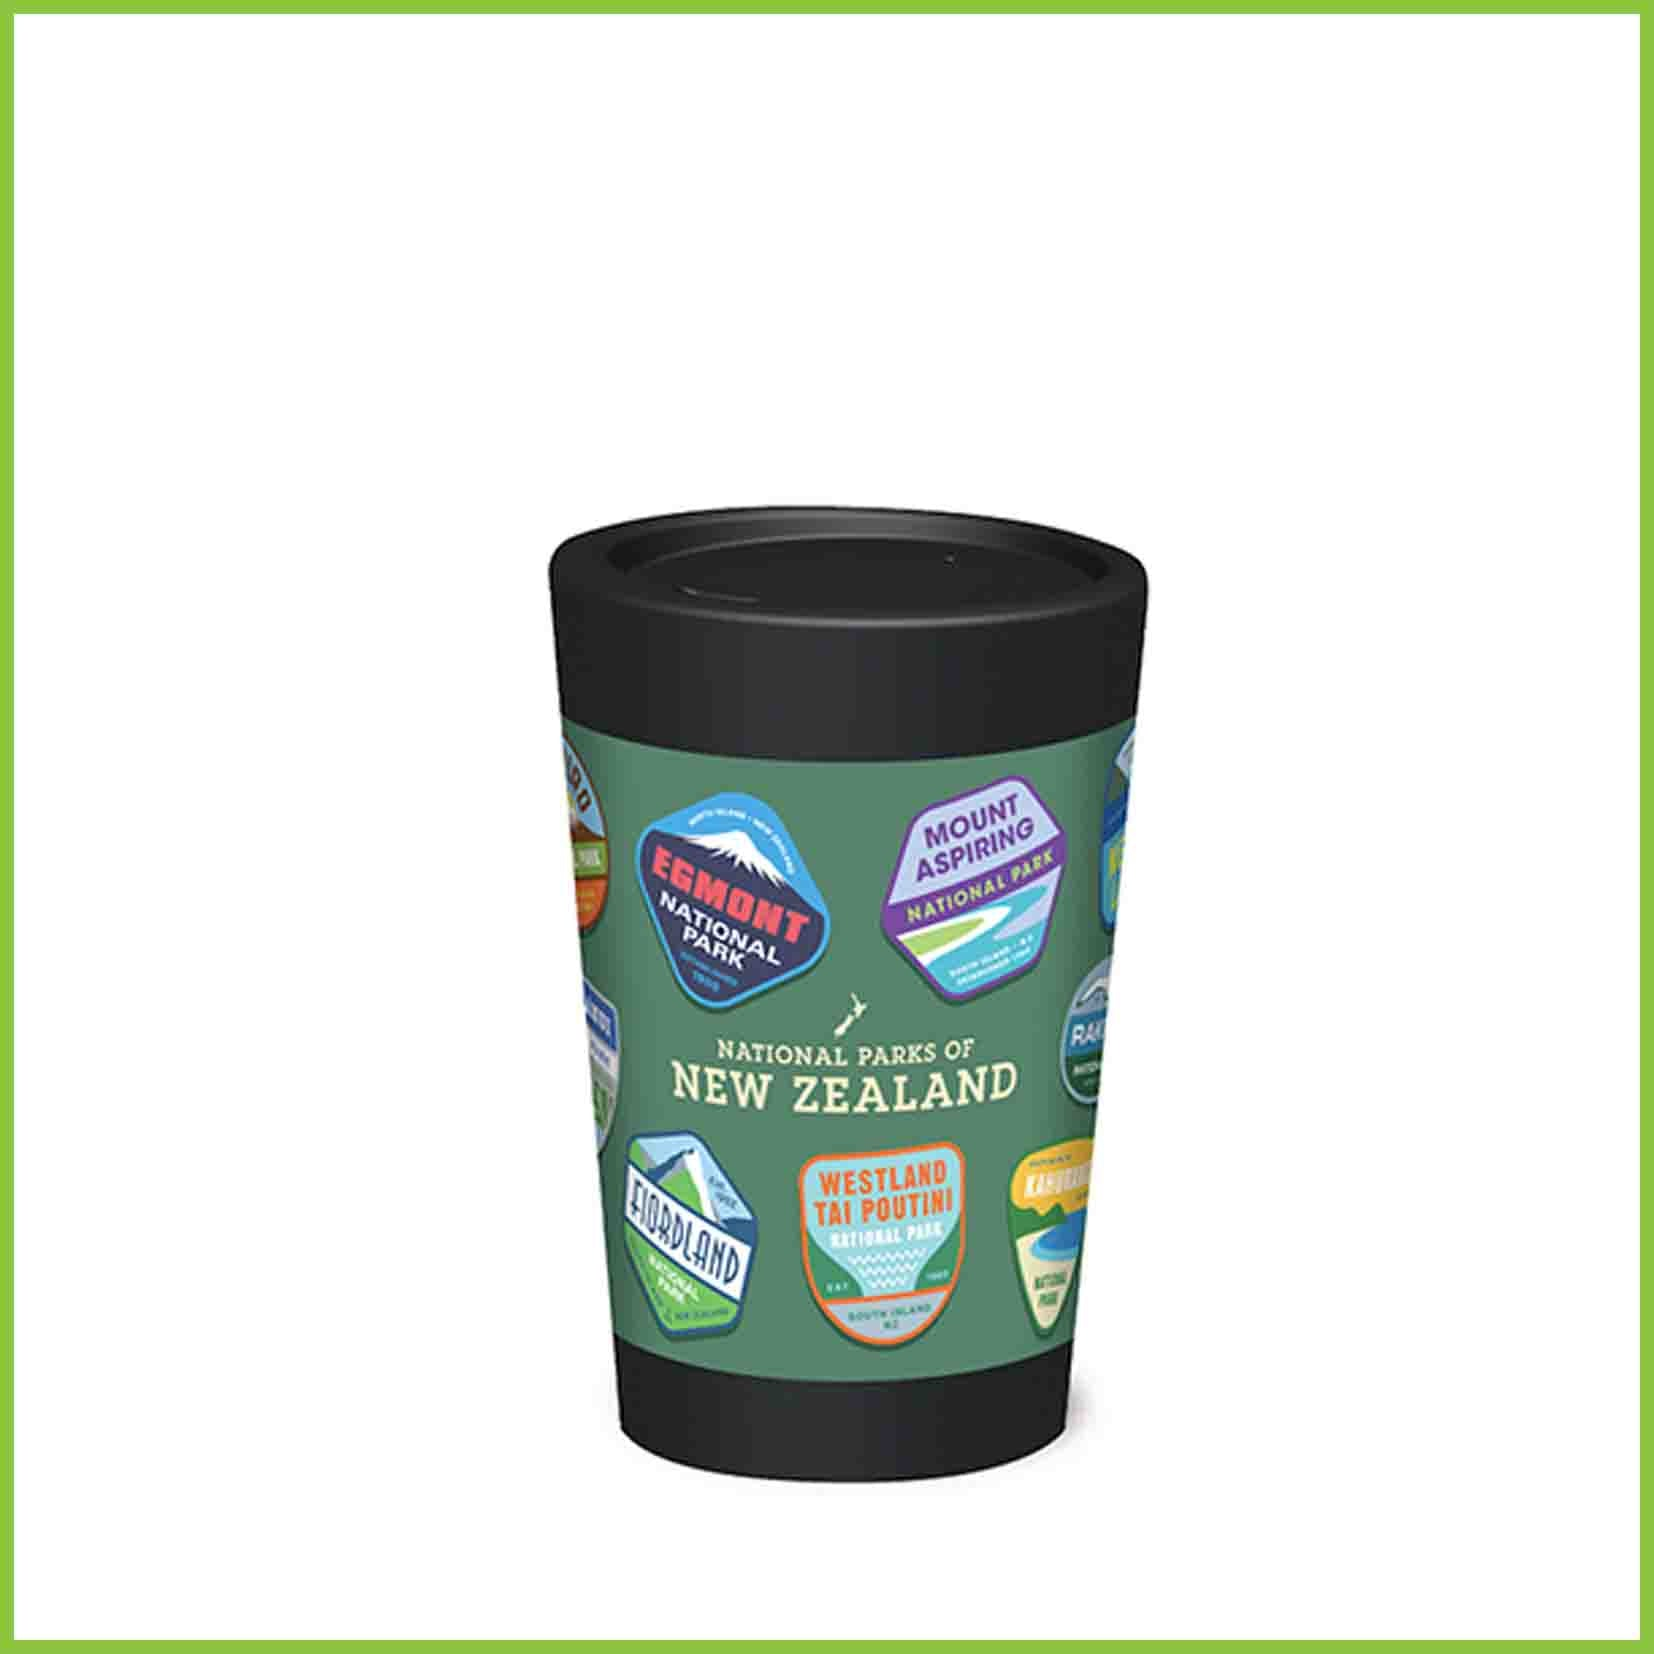 A reusable cup with a range of New Zealand National park badges.